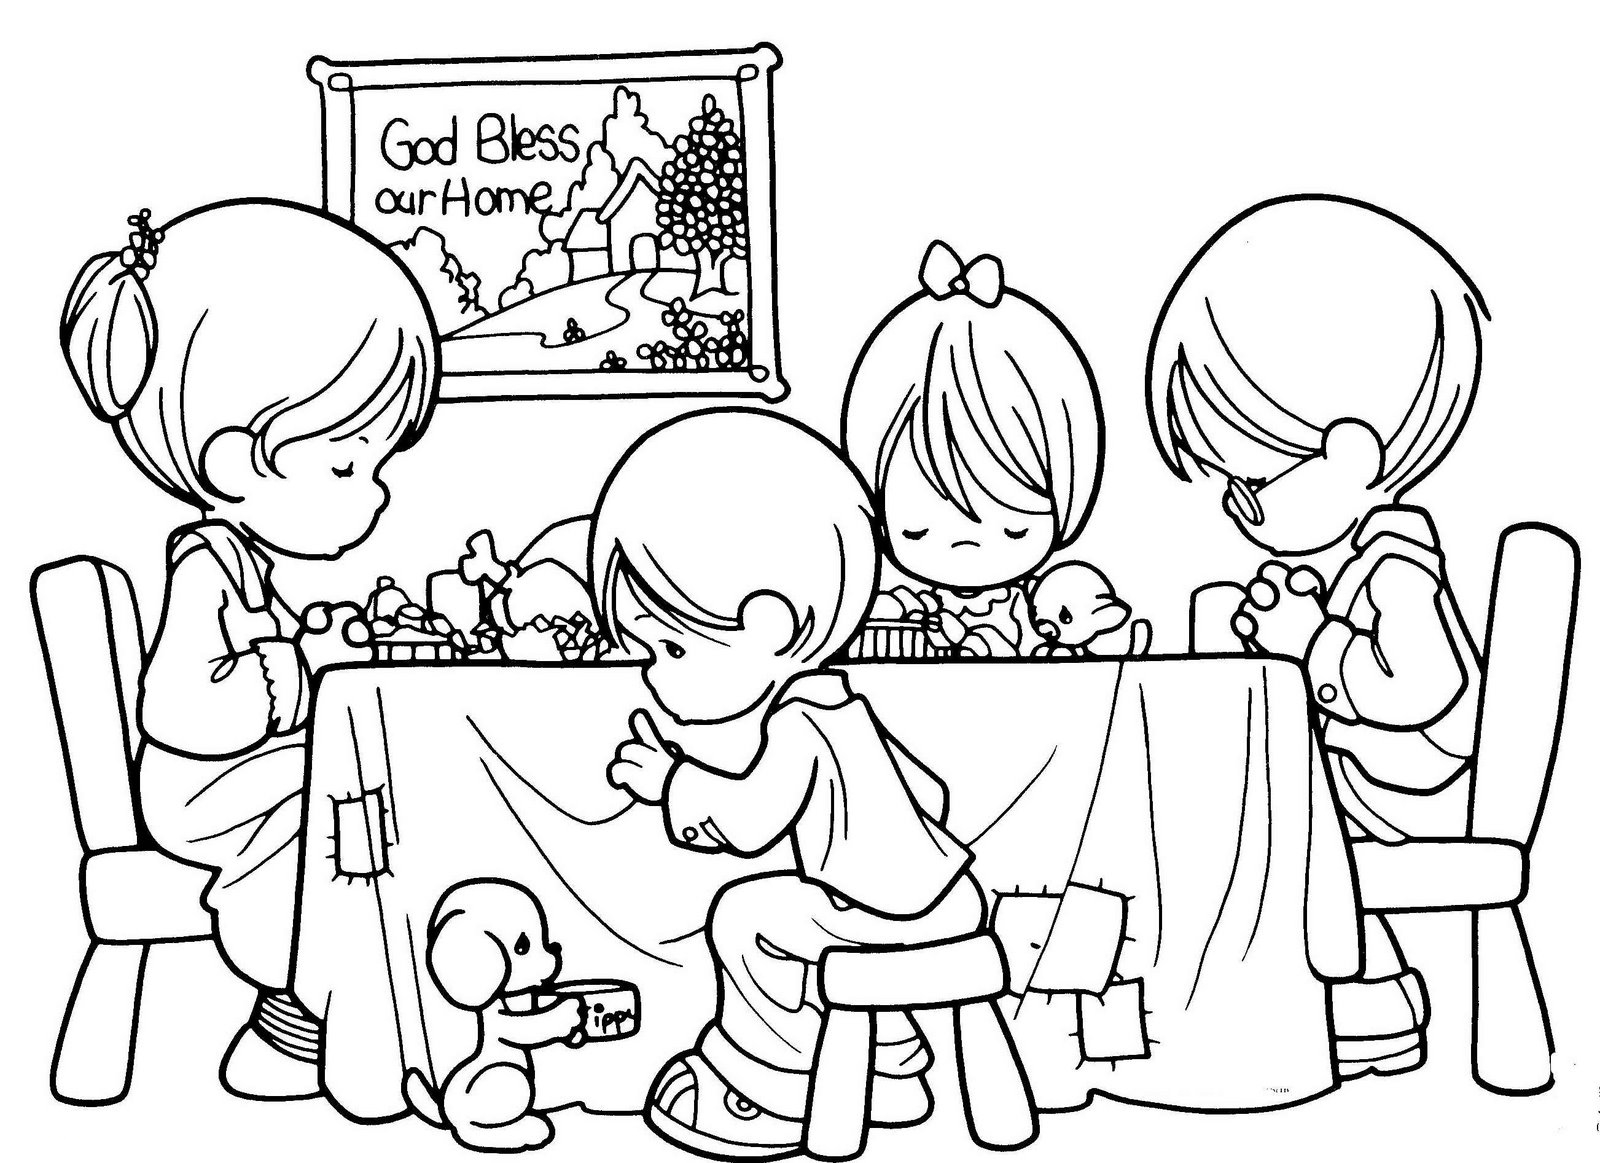 download free christian coloring pages - Christian Coloring Pages Free